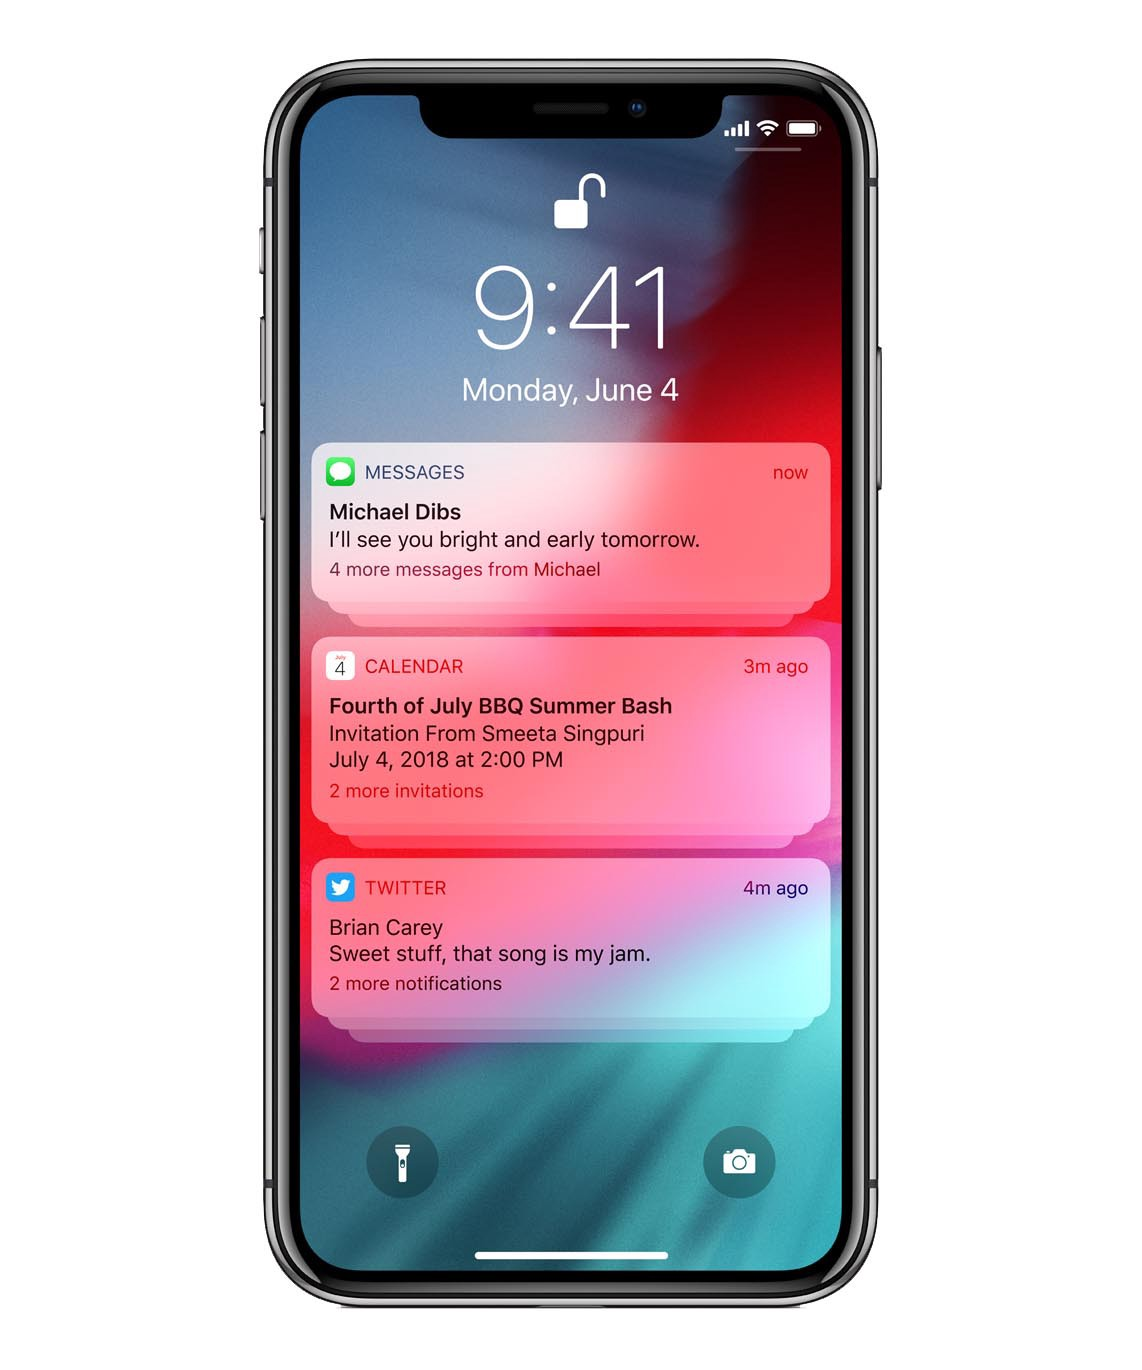 /complete-guide-receive-push-notifications-in-react-native-ios-app-38b1ec5b1b15 feature image